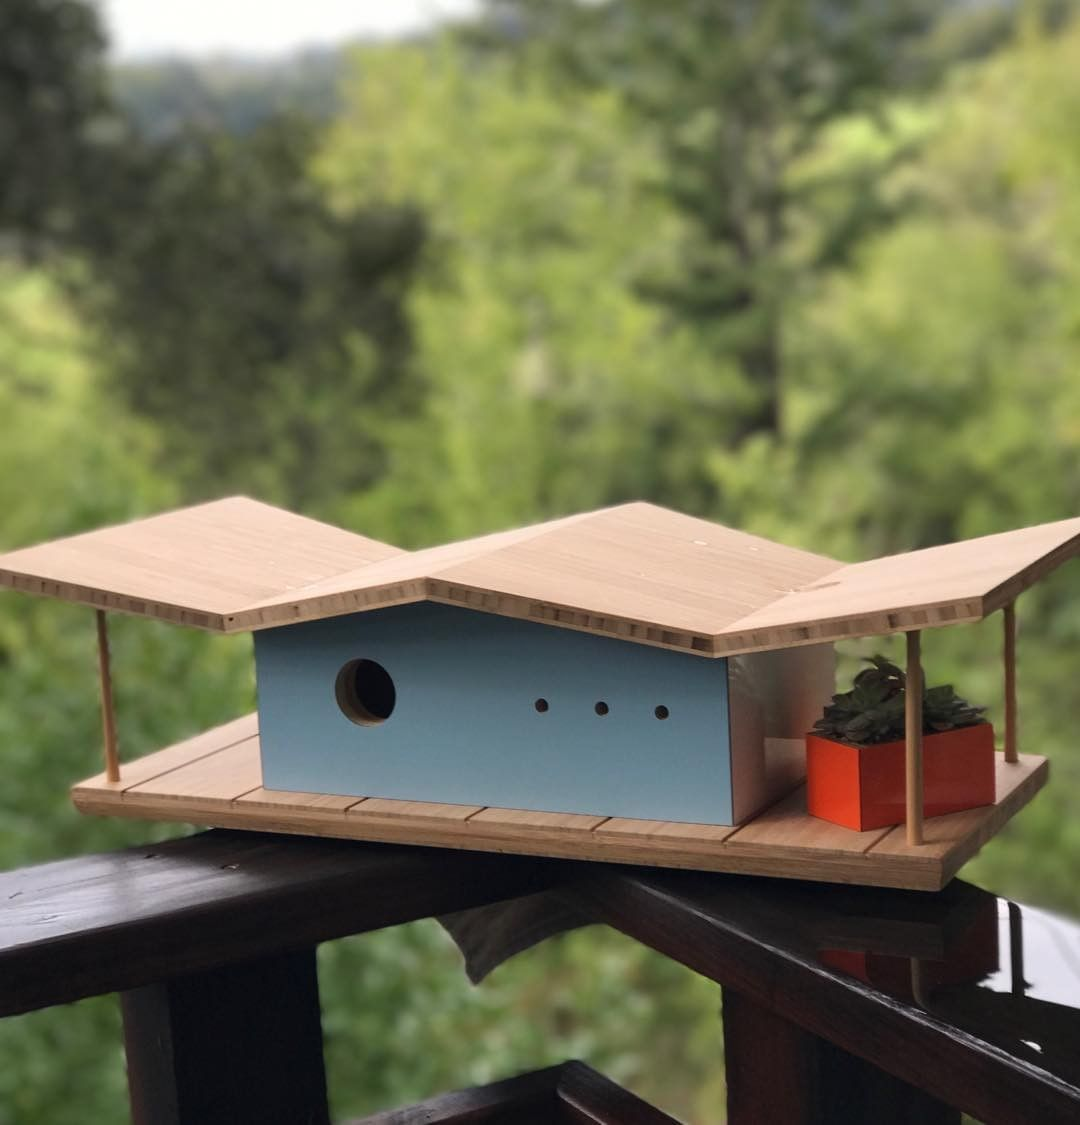 Midcentury Modern Birdhouses Why Not Curbed Modern Birdhouses Decorative Bird Houses Bird House